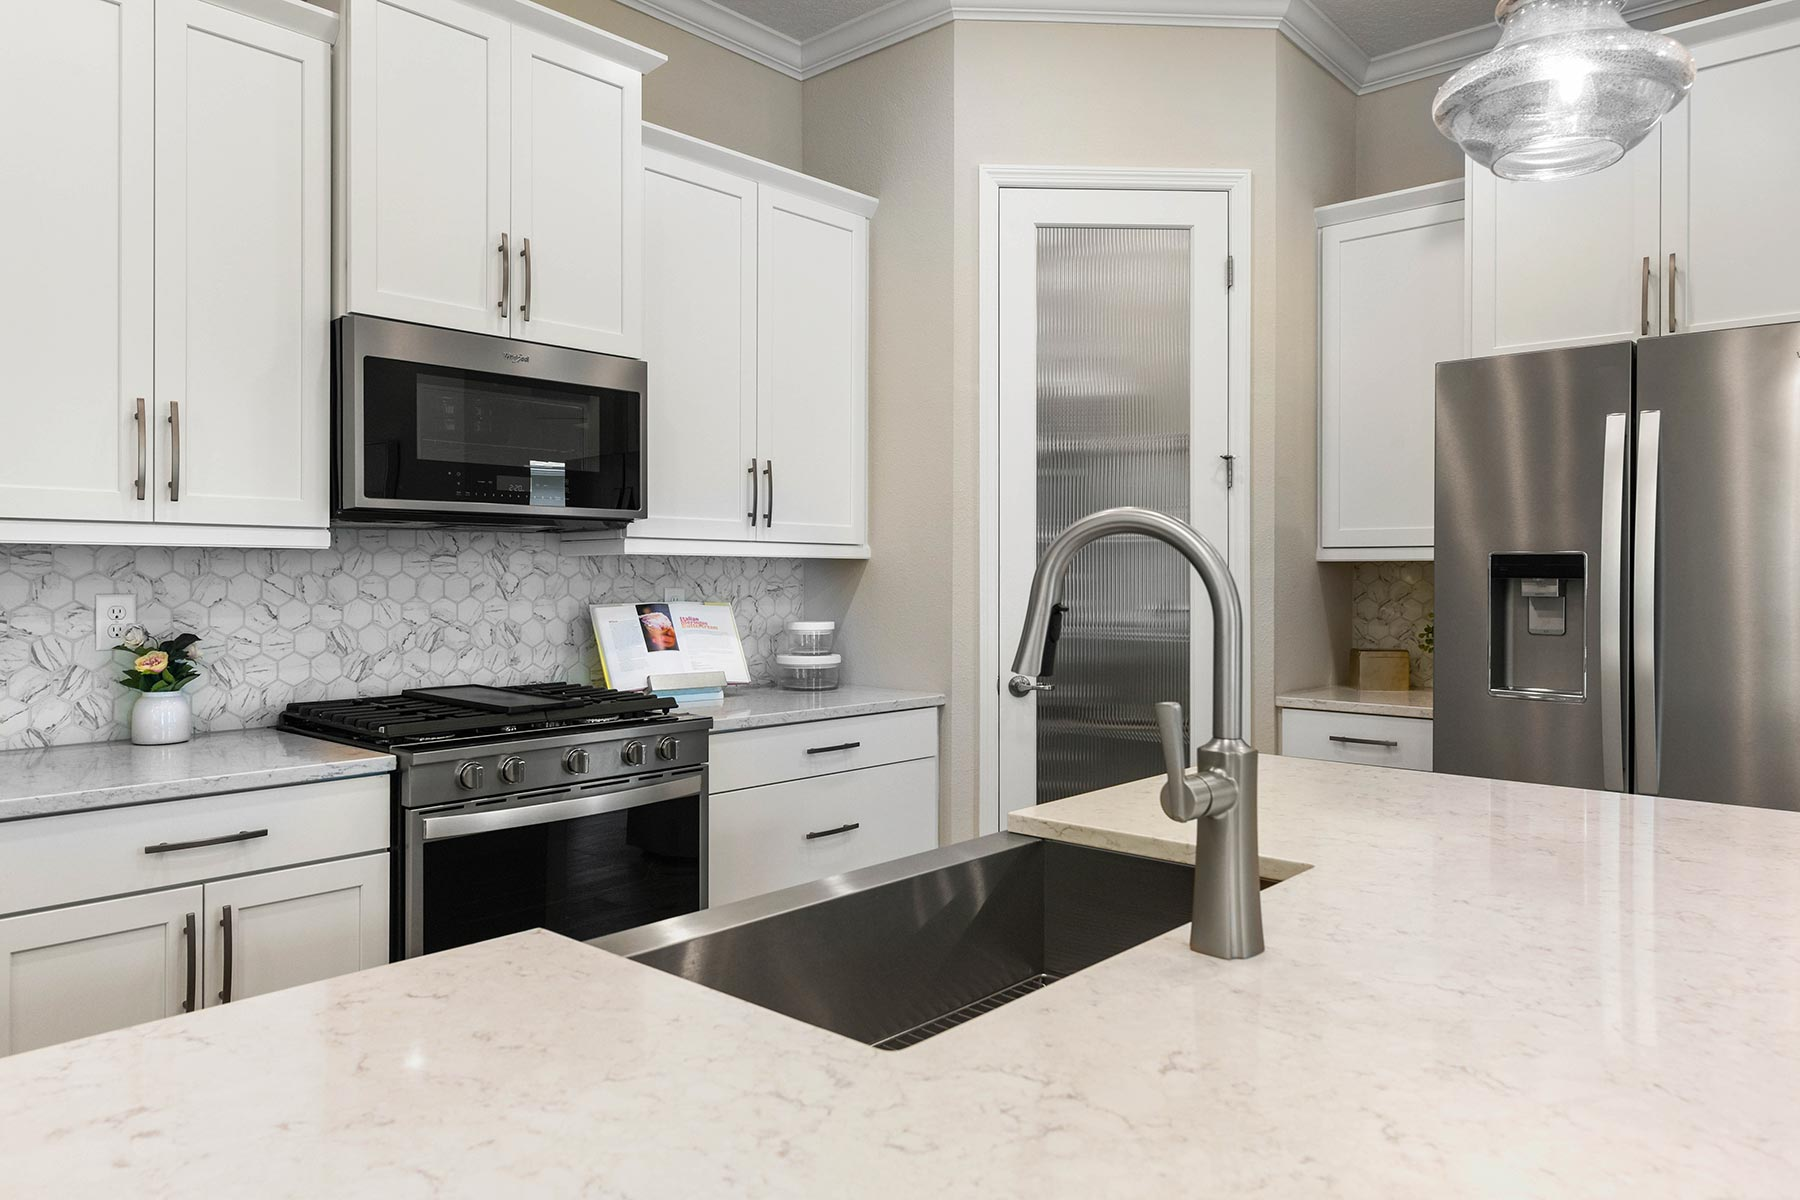 Court Plan Kitchen at RiverTown - WaterSong in St. Johns Florida by Mattamy Homes